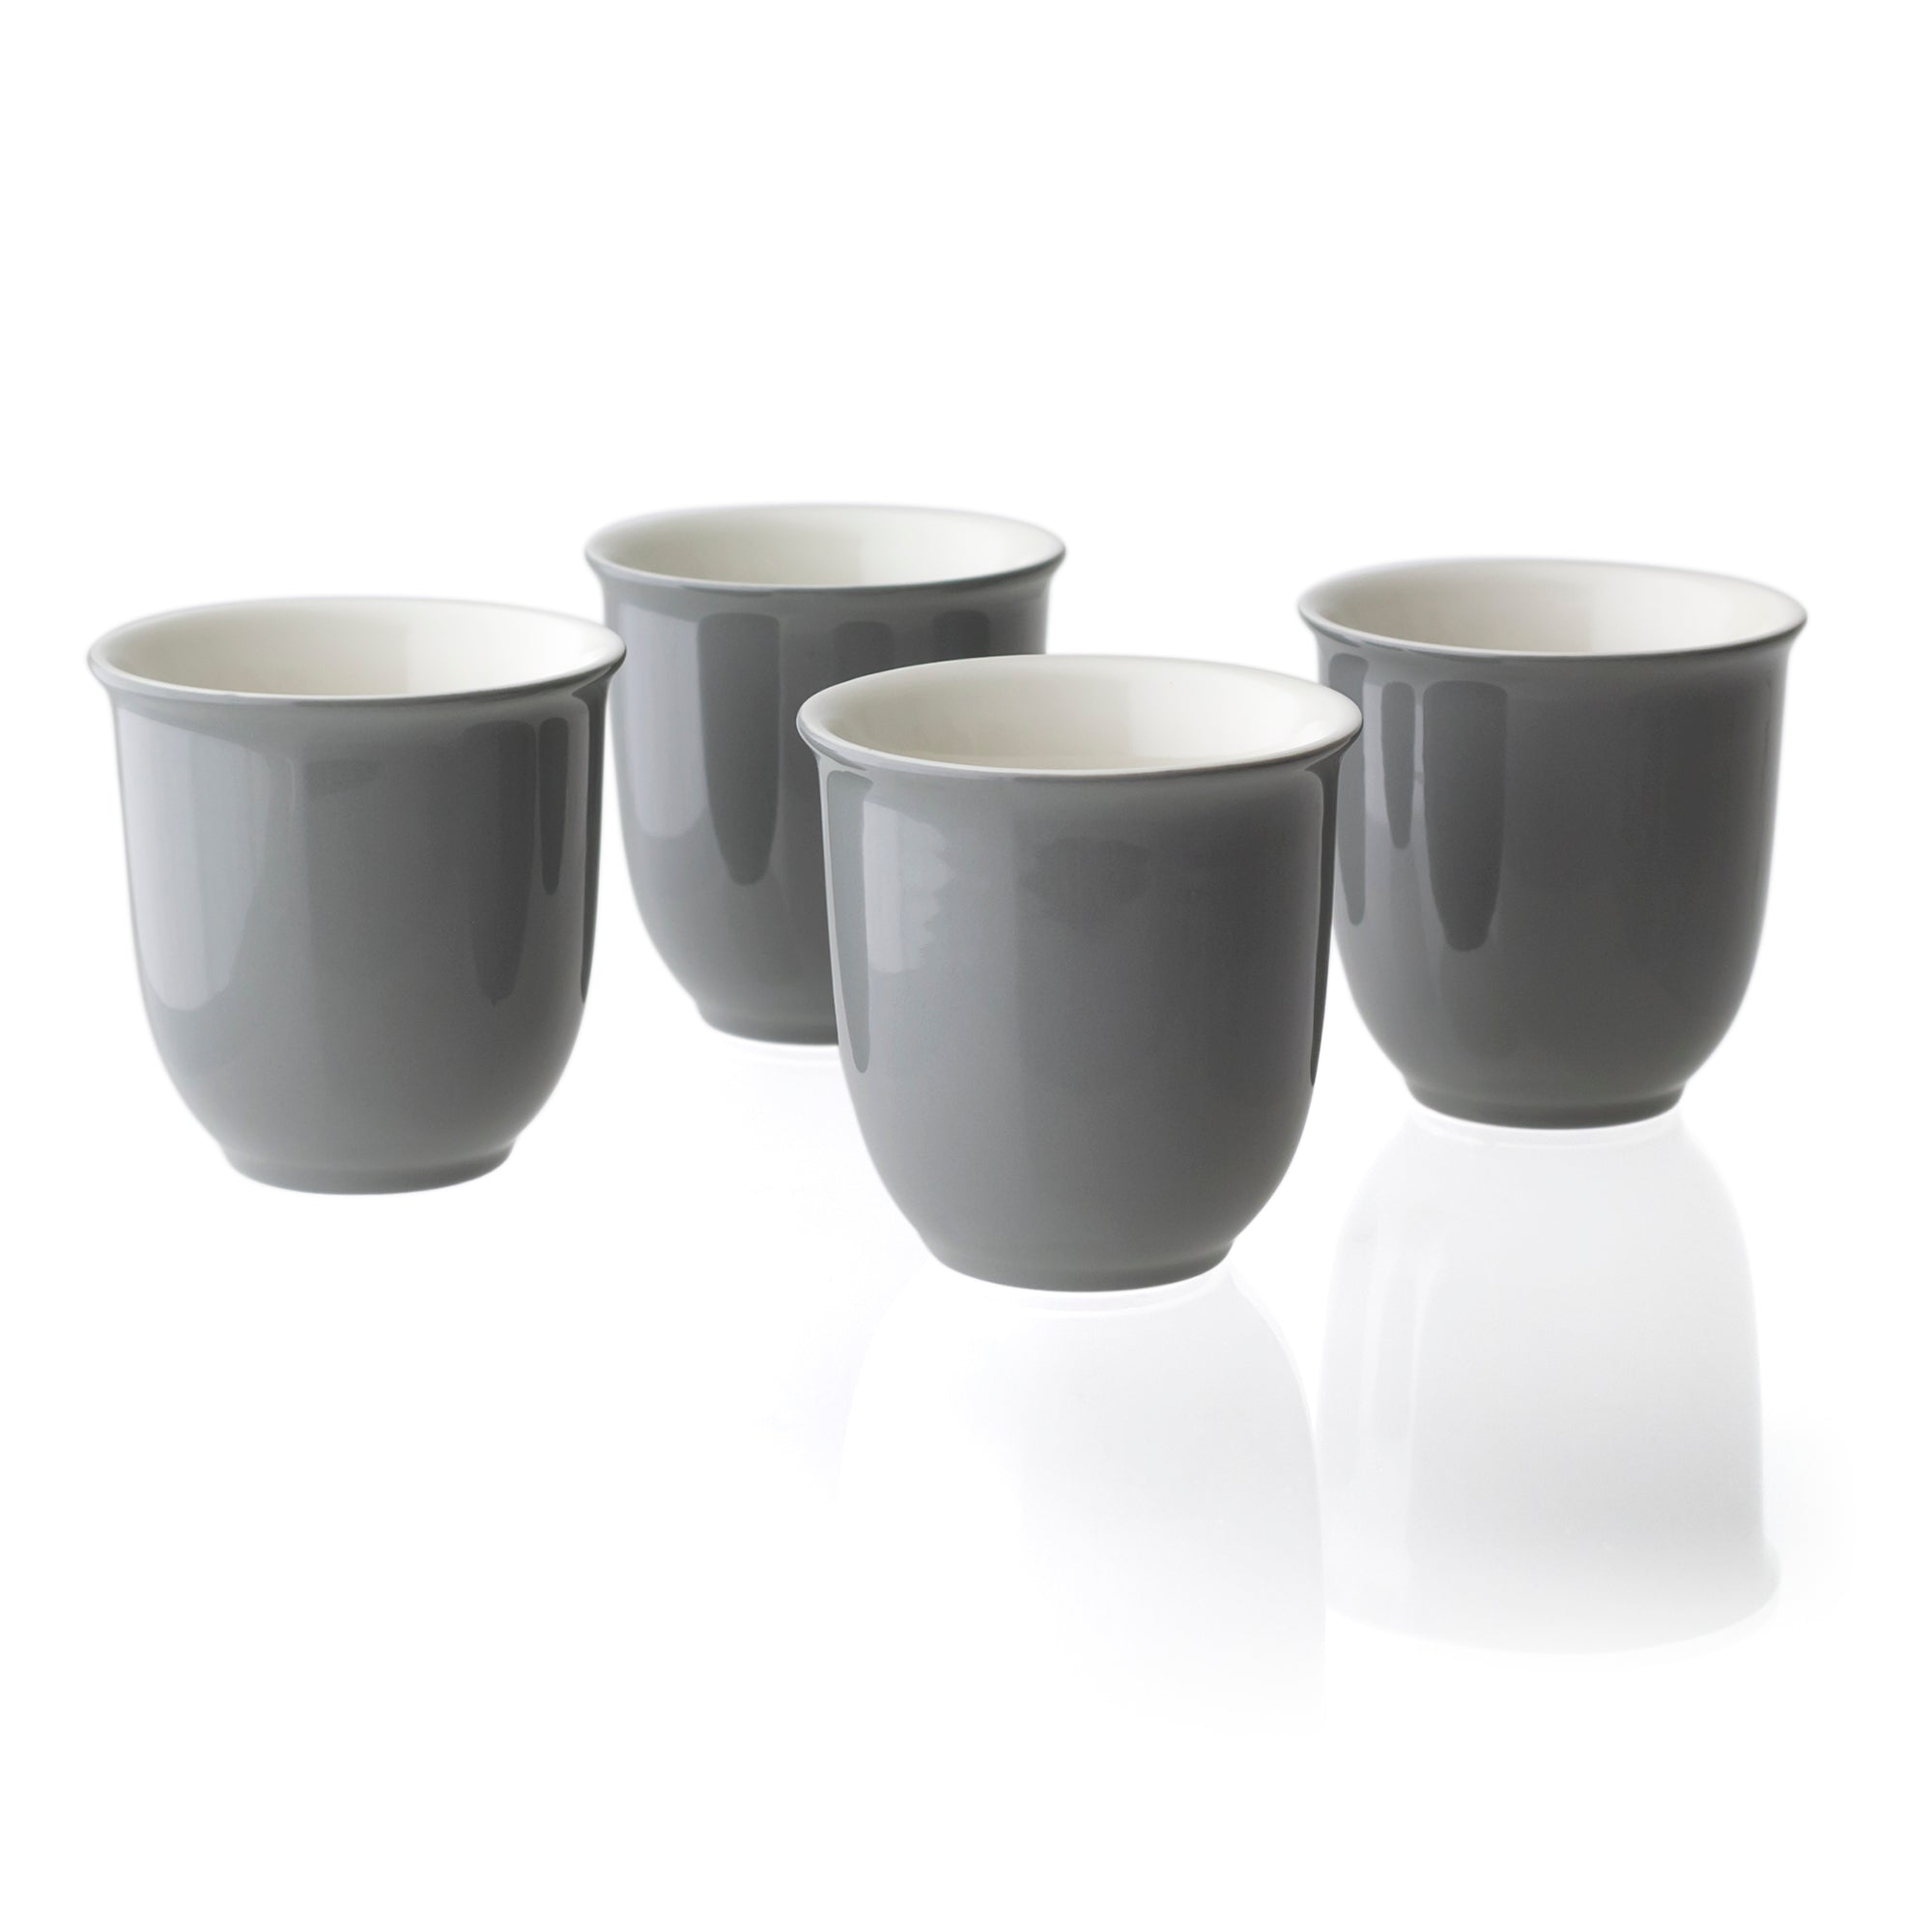 Japanese Tea Cup - 6.5 oz., 4 pc pack